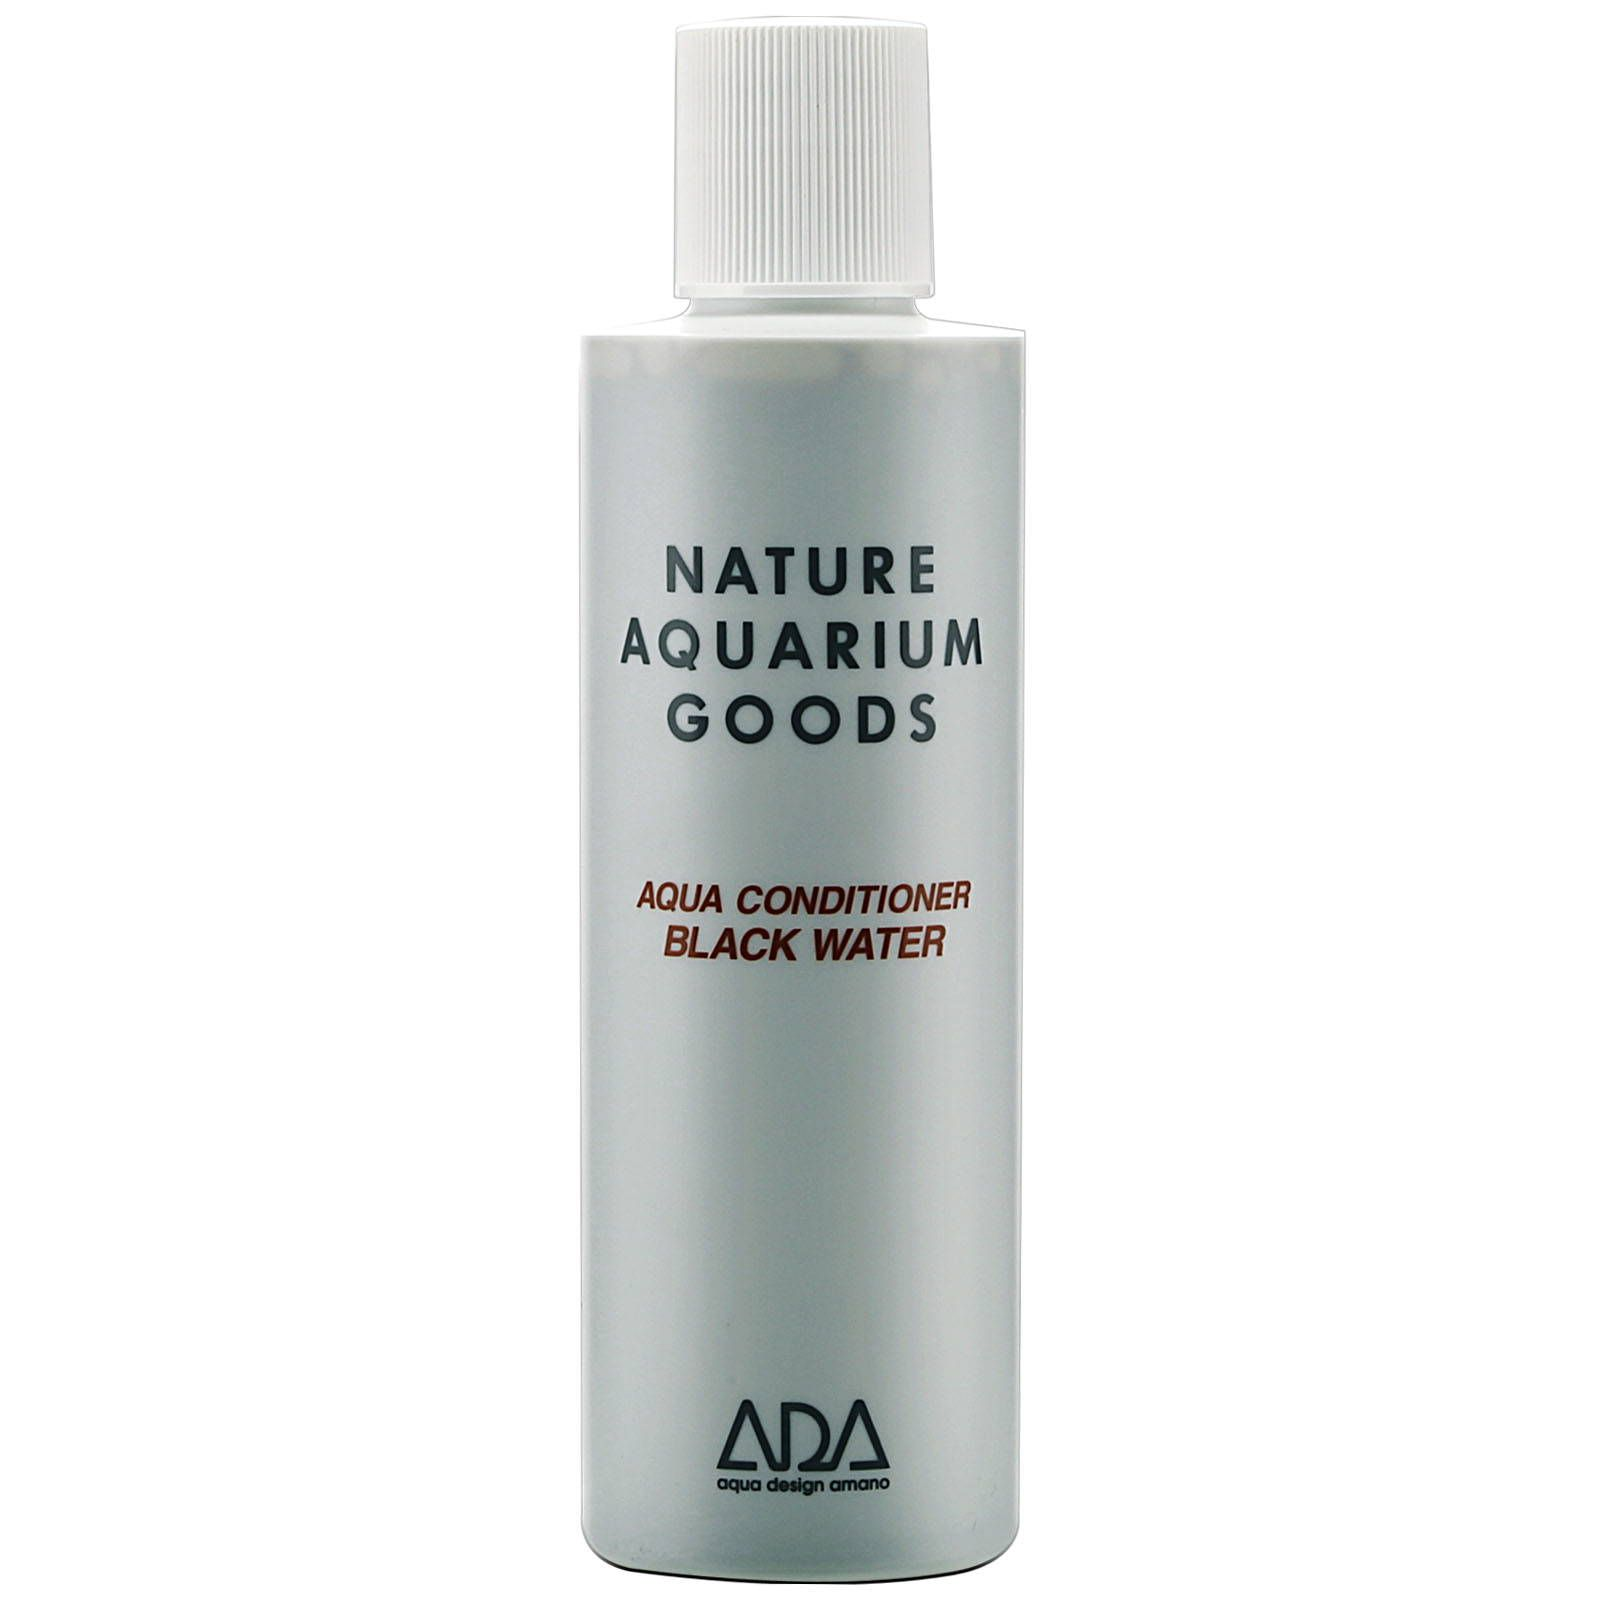 ADA - Aqua Conditioner - Blackwater